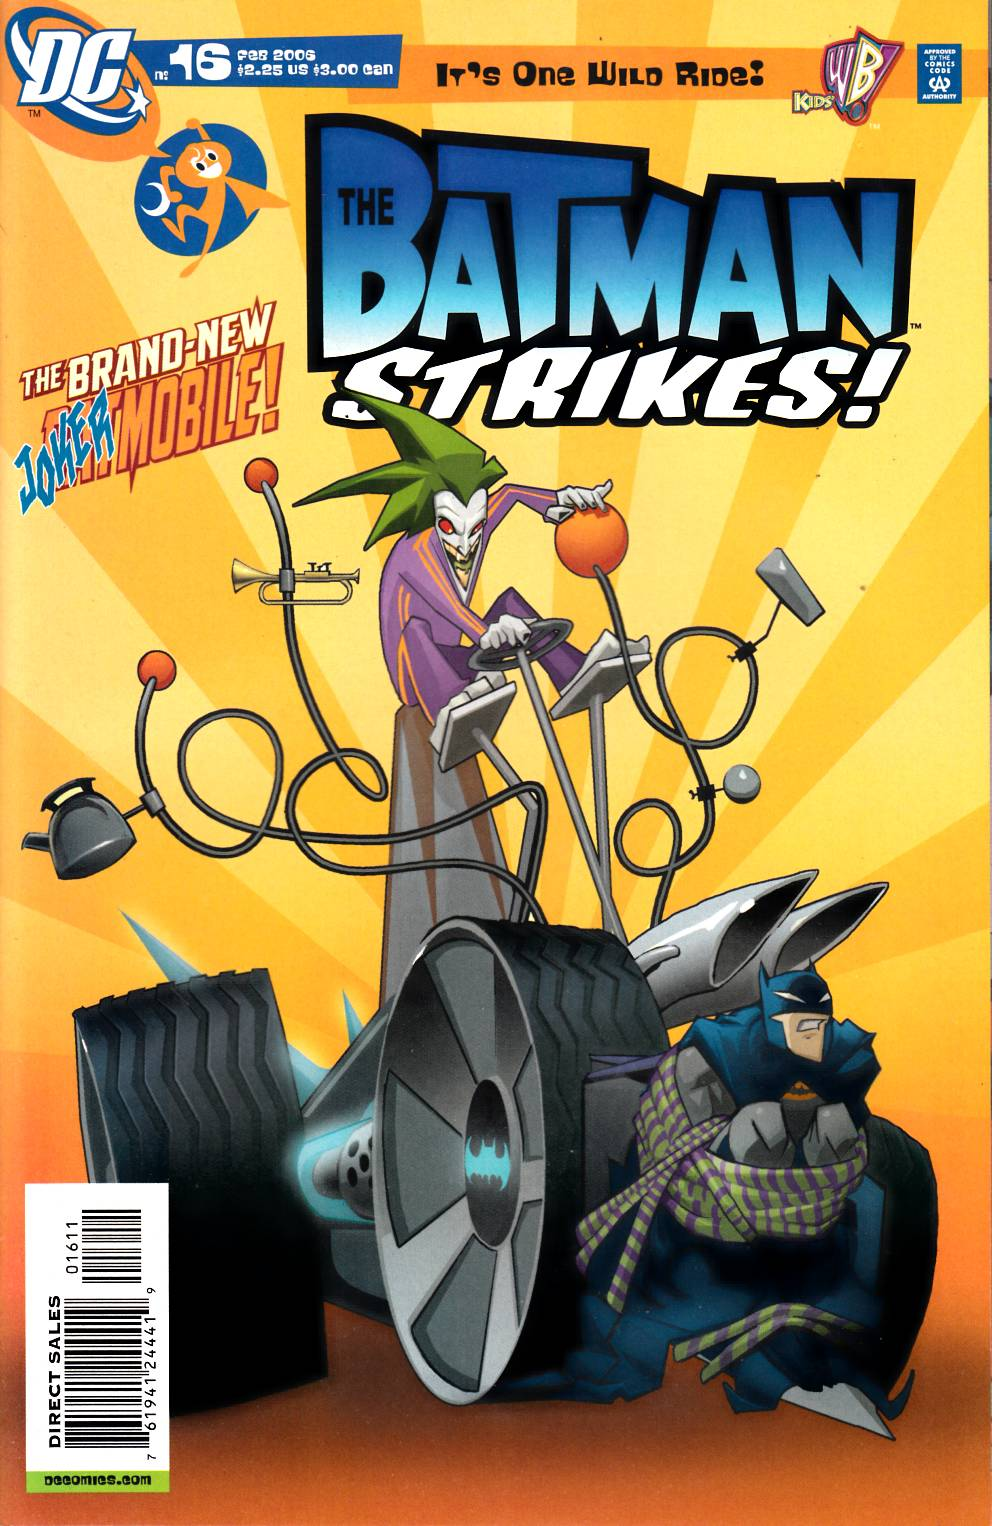 Batman Strikes #16 Near Mint (9.4) [DC Comic]